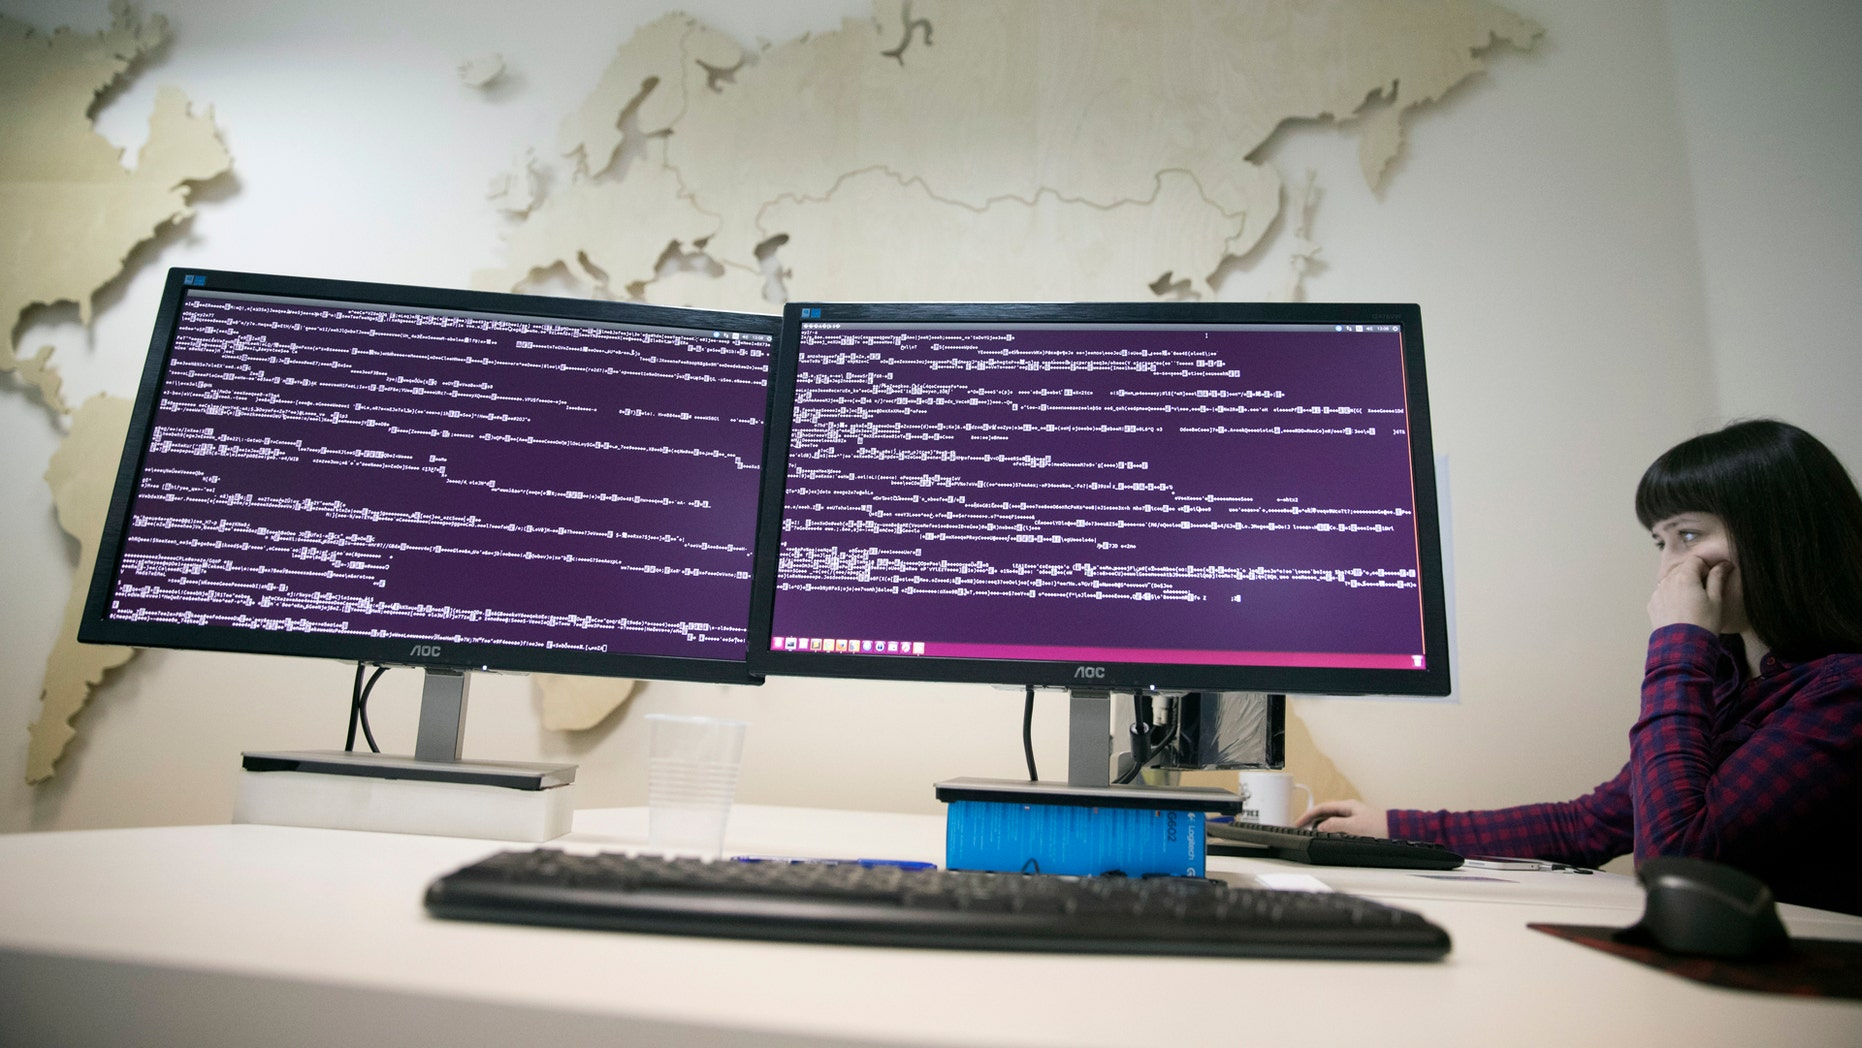 A computer code is seen on displays in the office of Global Cyber Security Company Group-IB in Moscow, Russia, Wednesday, Oct. 25, 2017 as reports emerge of new ransomware dubbed 'Bad Rabbit.'  (AP Photo/Pavel Golovkin)